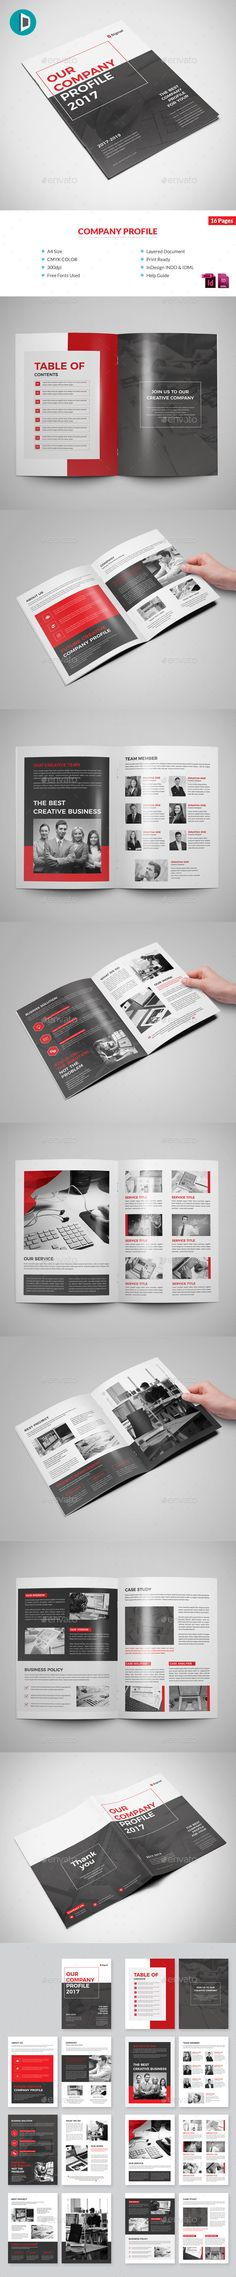 #Company #Profile - Corporate #Brochures Download here: https://graphicriver.net/item/company-profile/20340515?ref=alena994